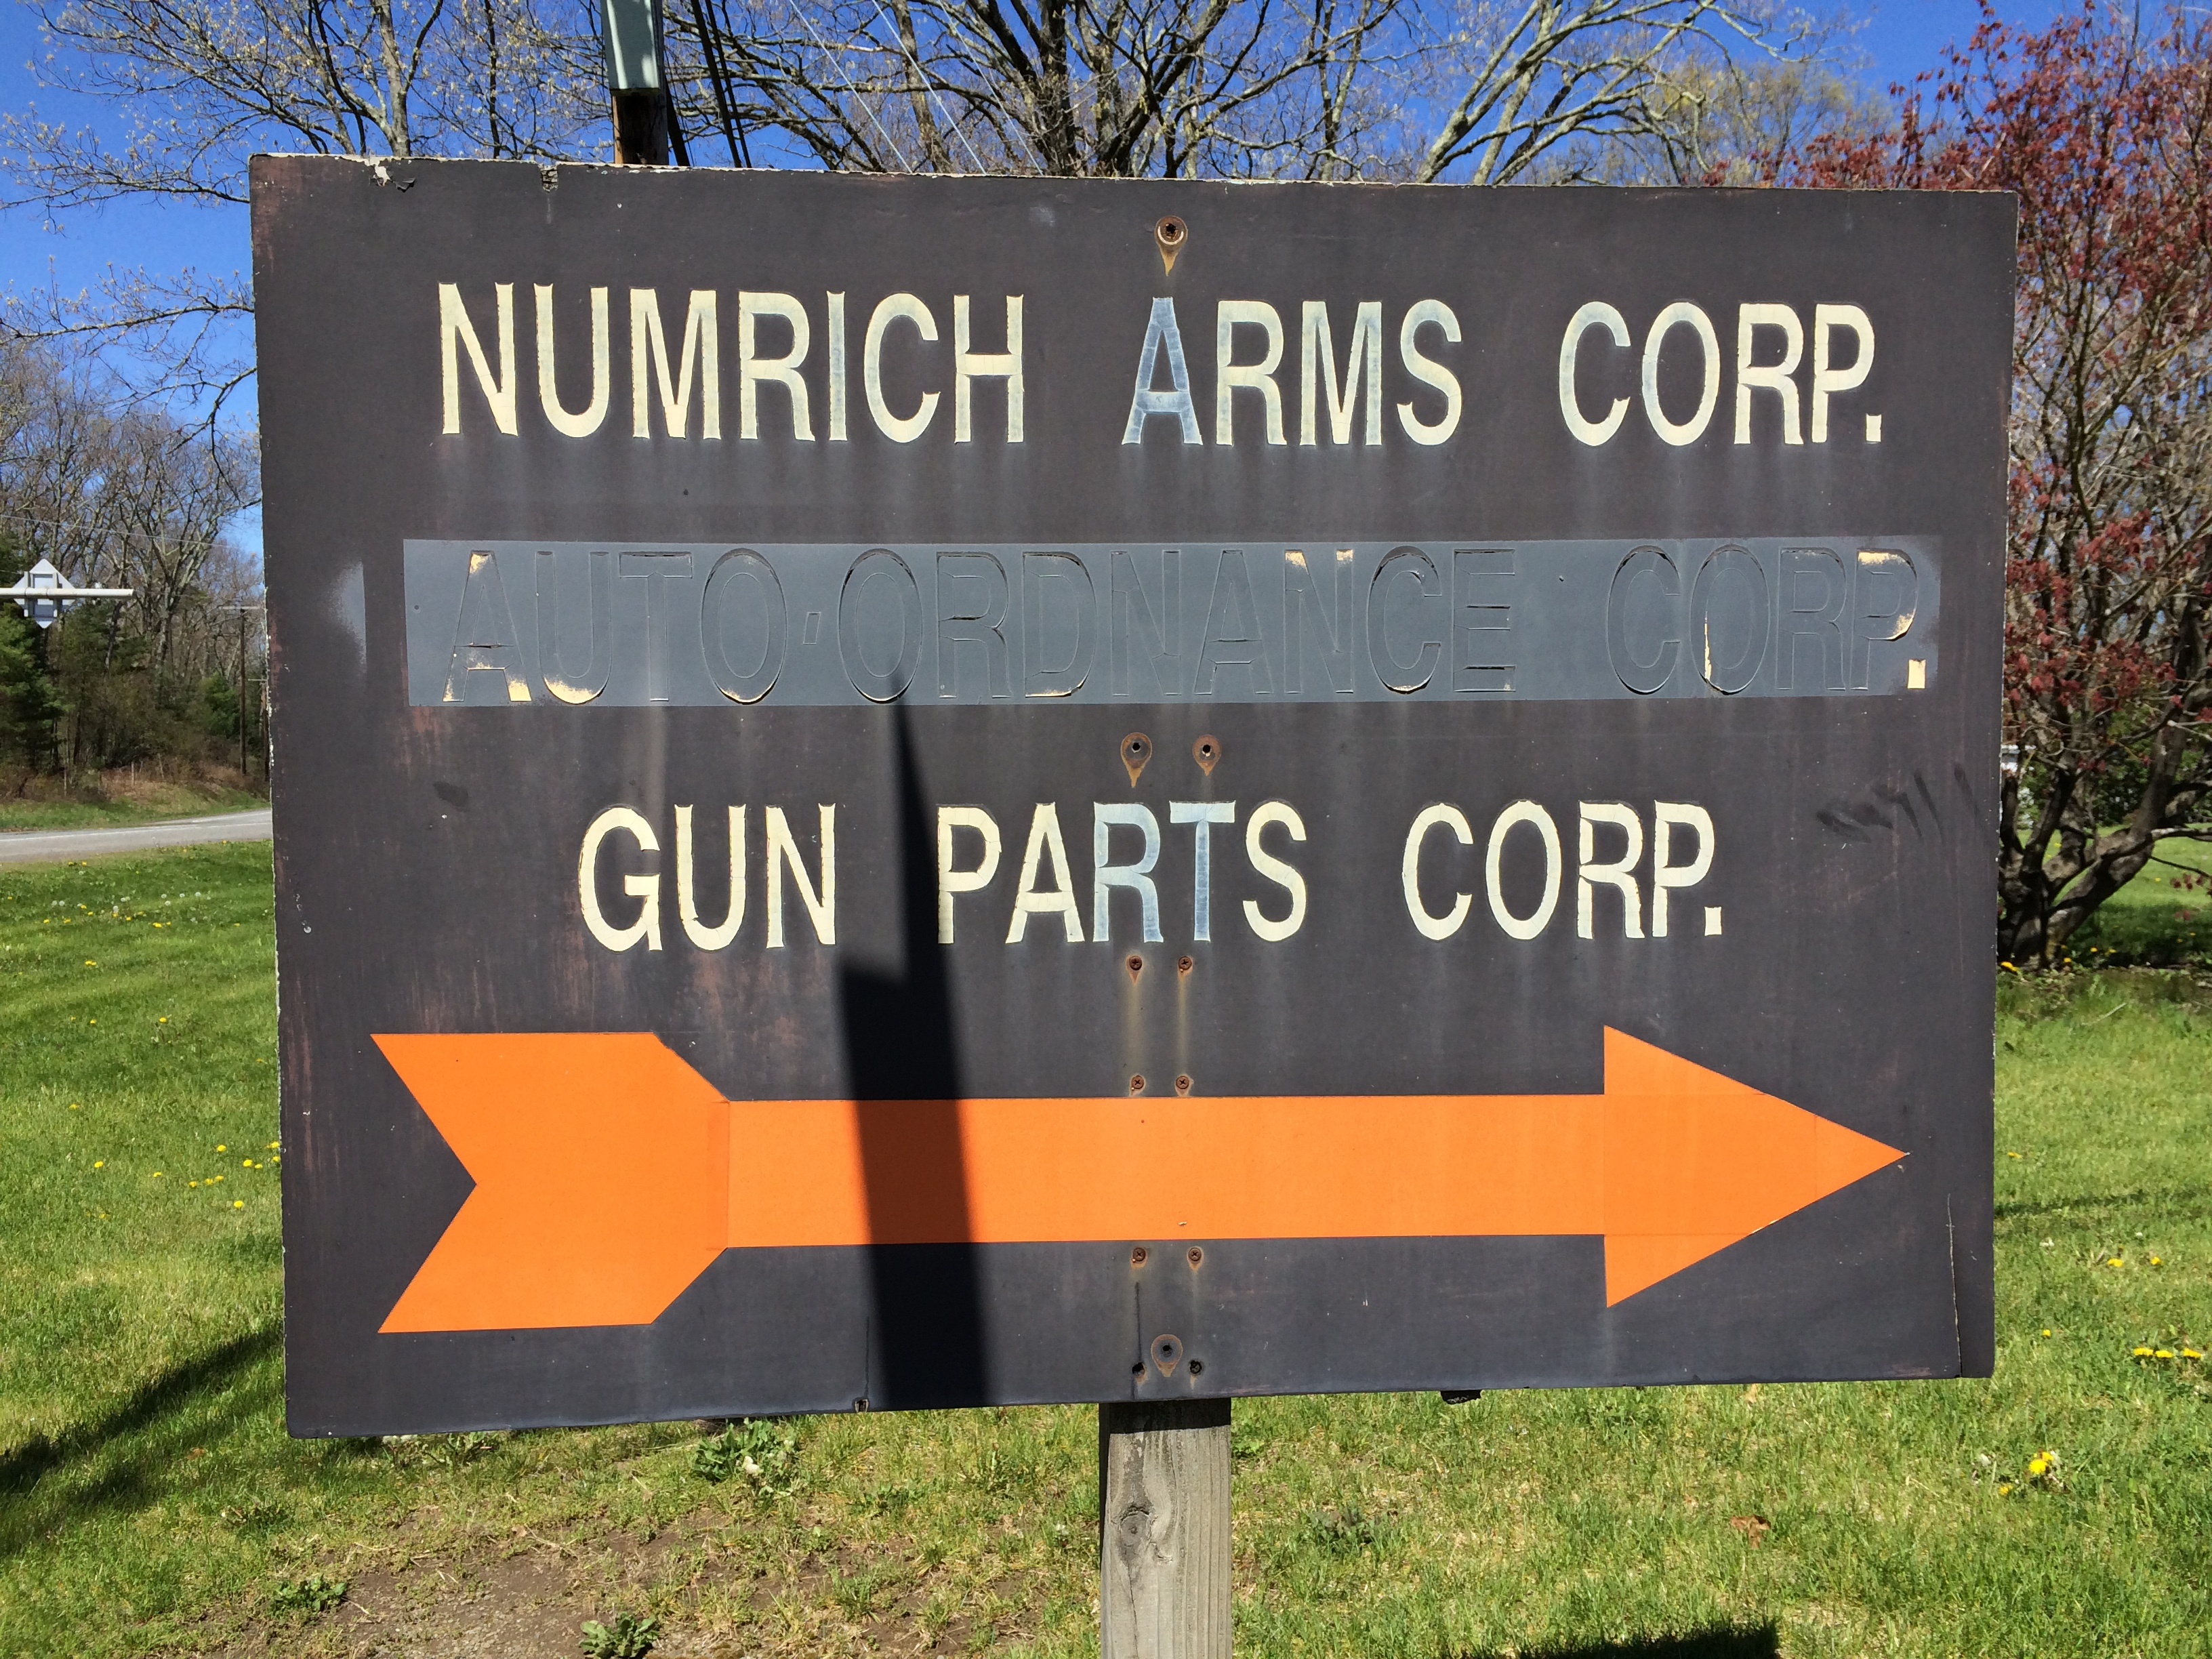 Numrich Arms Archived Superfund Site